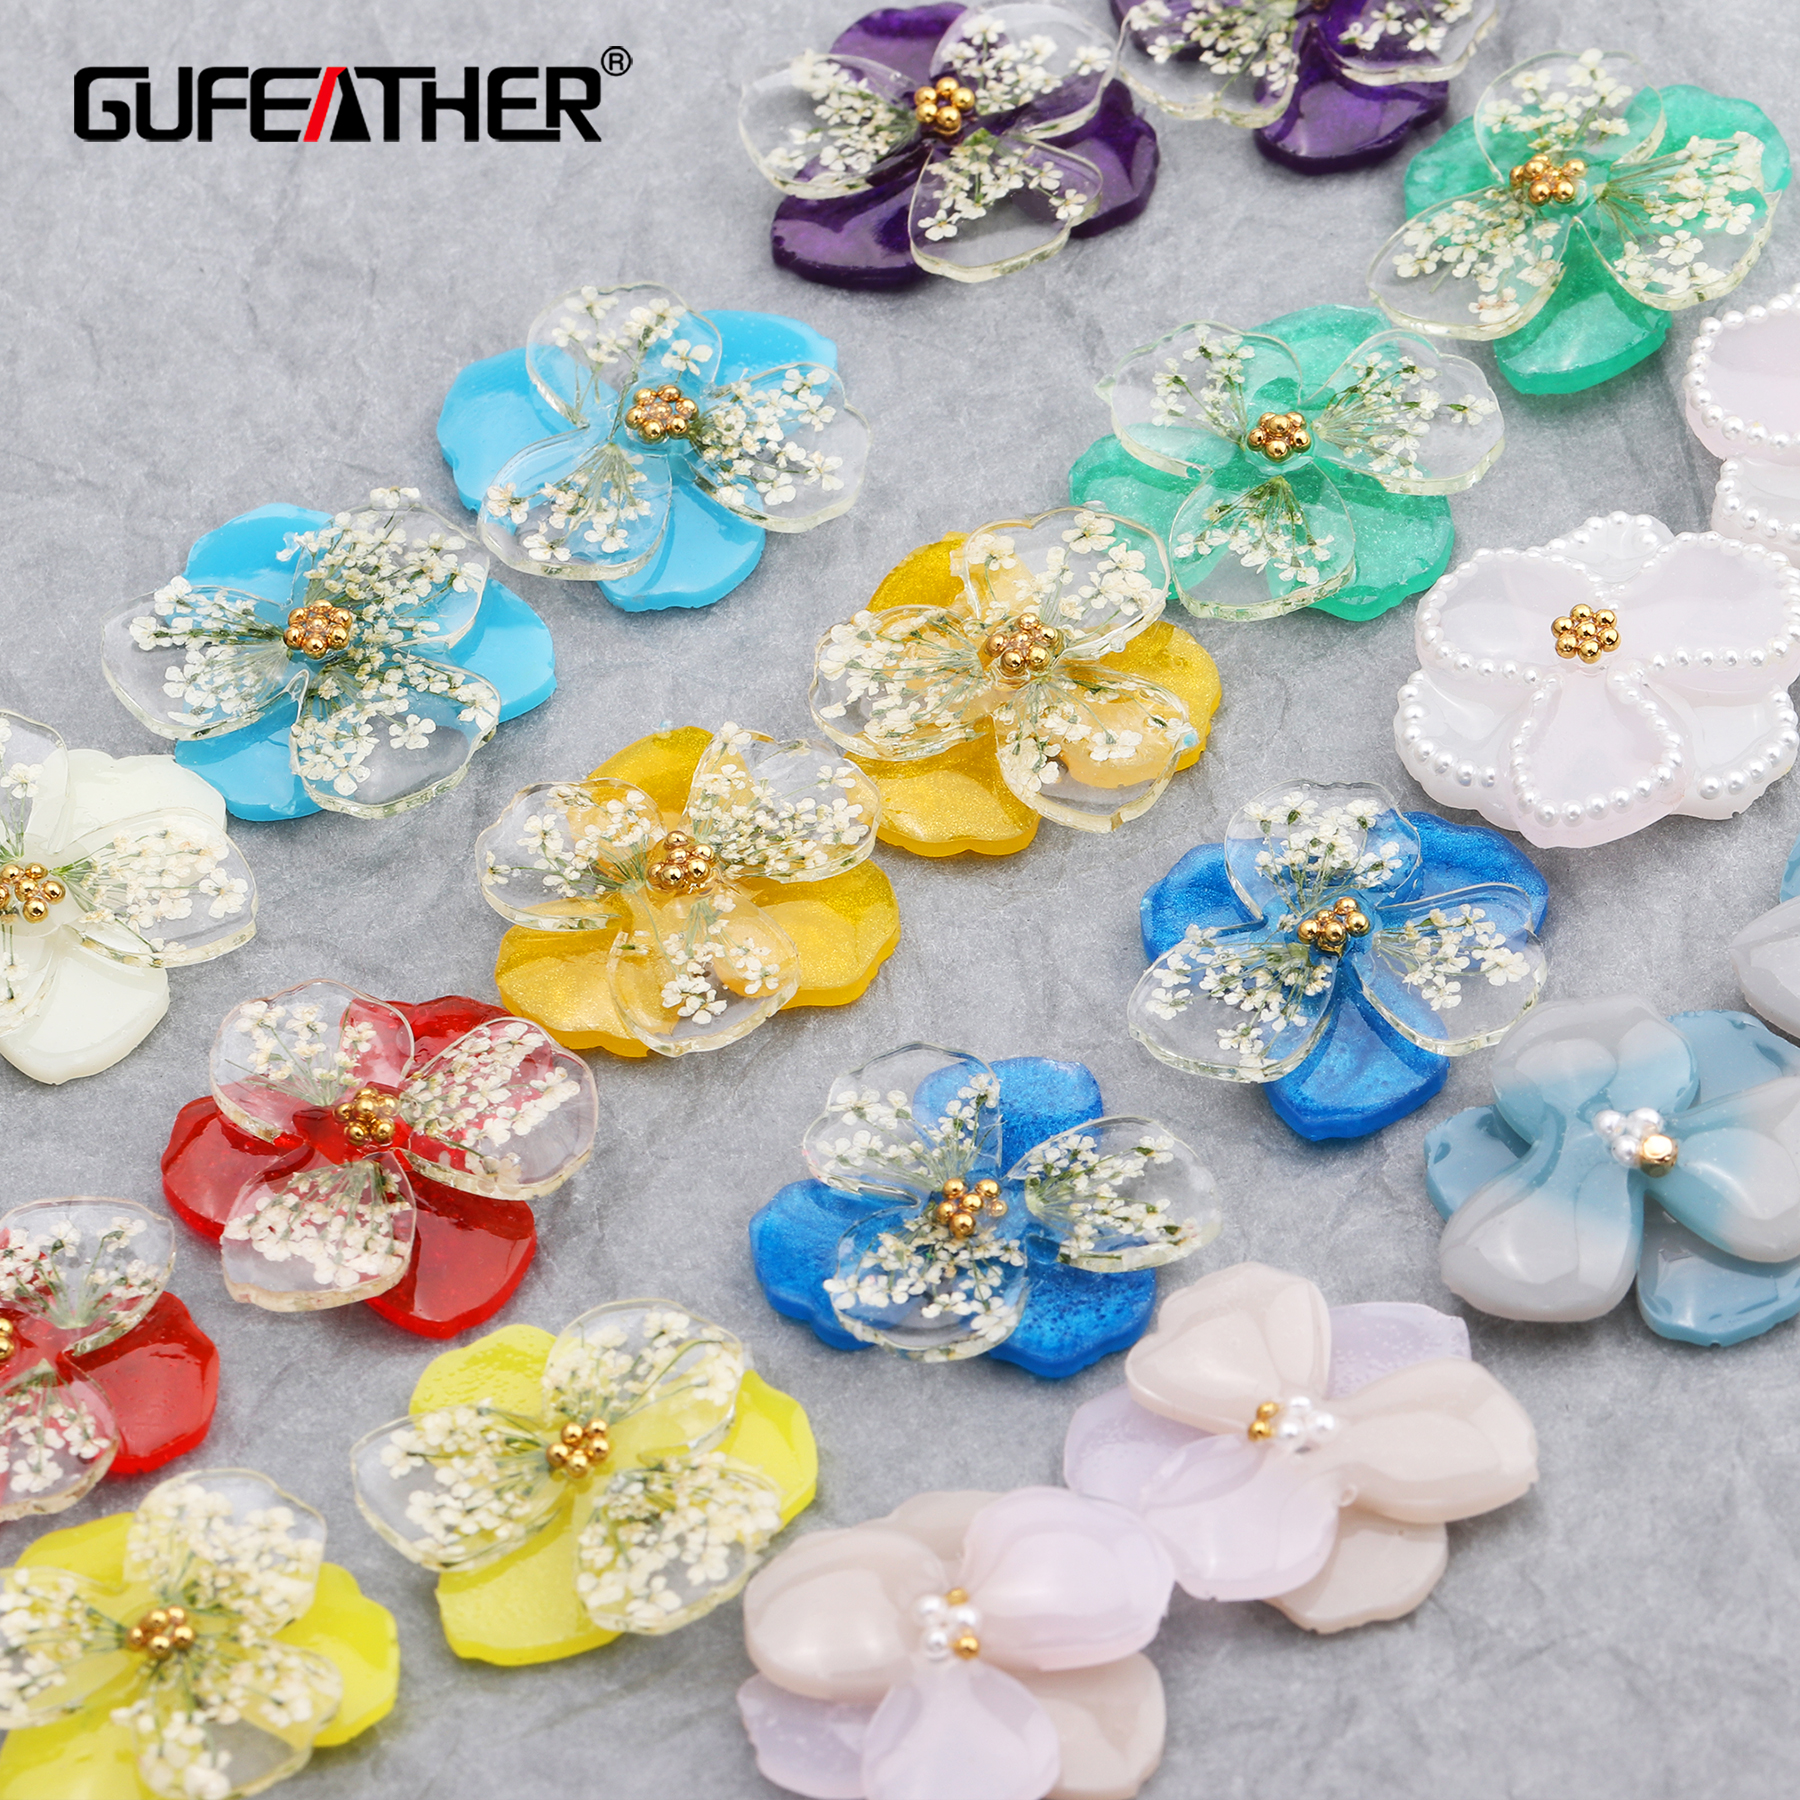 GUFEATHER M601,jewelry Accessories,diy Earring,dried Flower,jewelry Findings,diy Resin Pendant,hand Made,jewelry Making,4pcs/lot